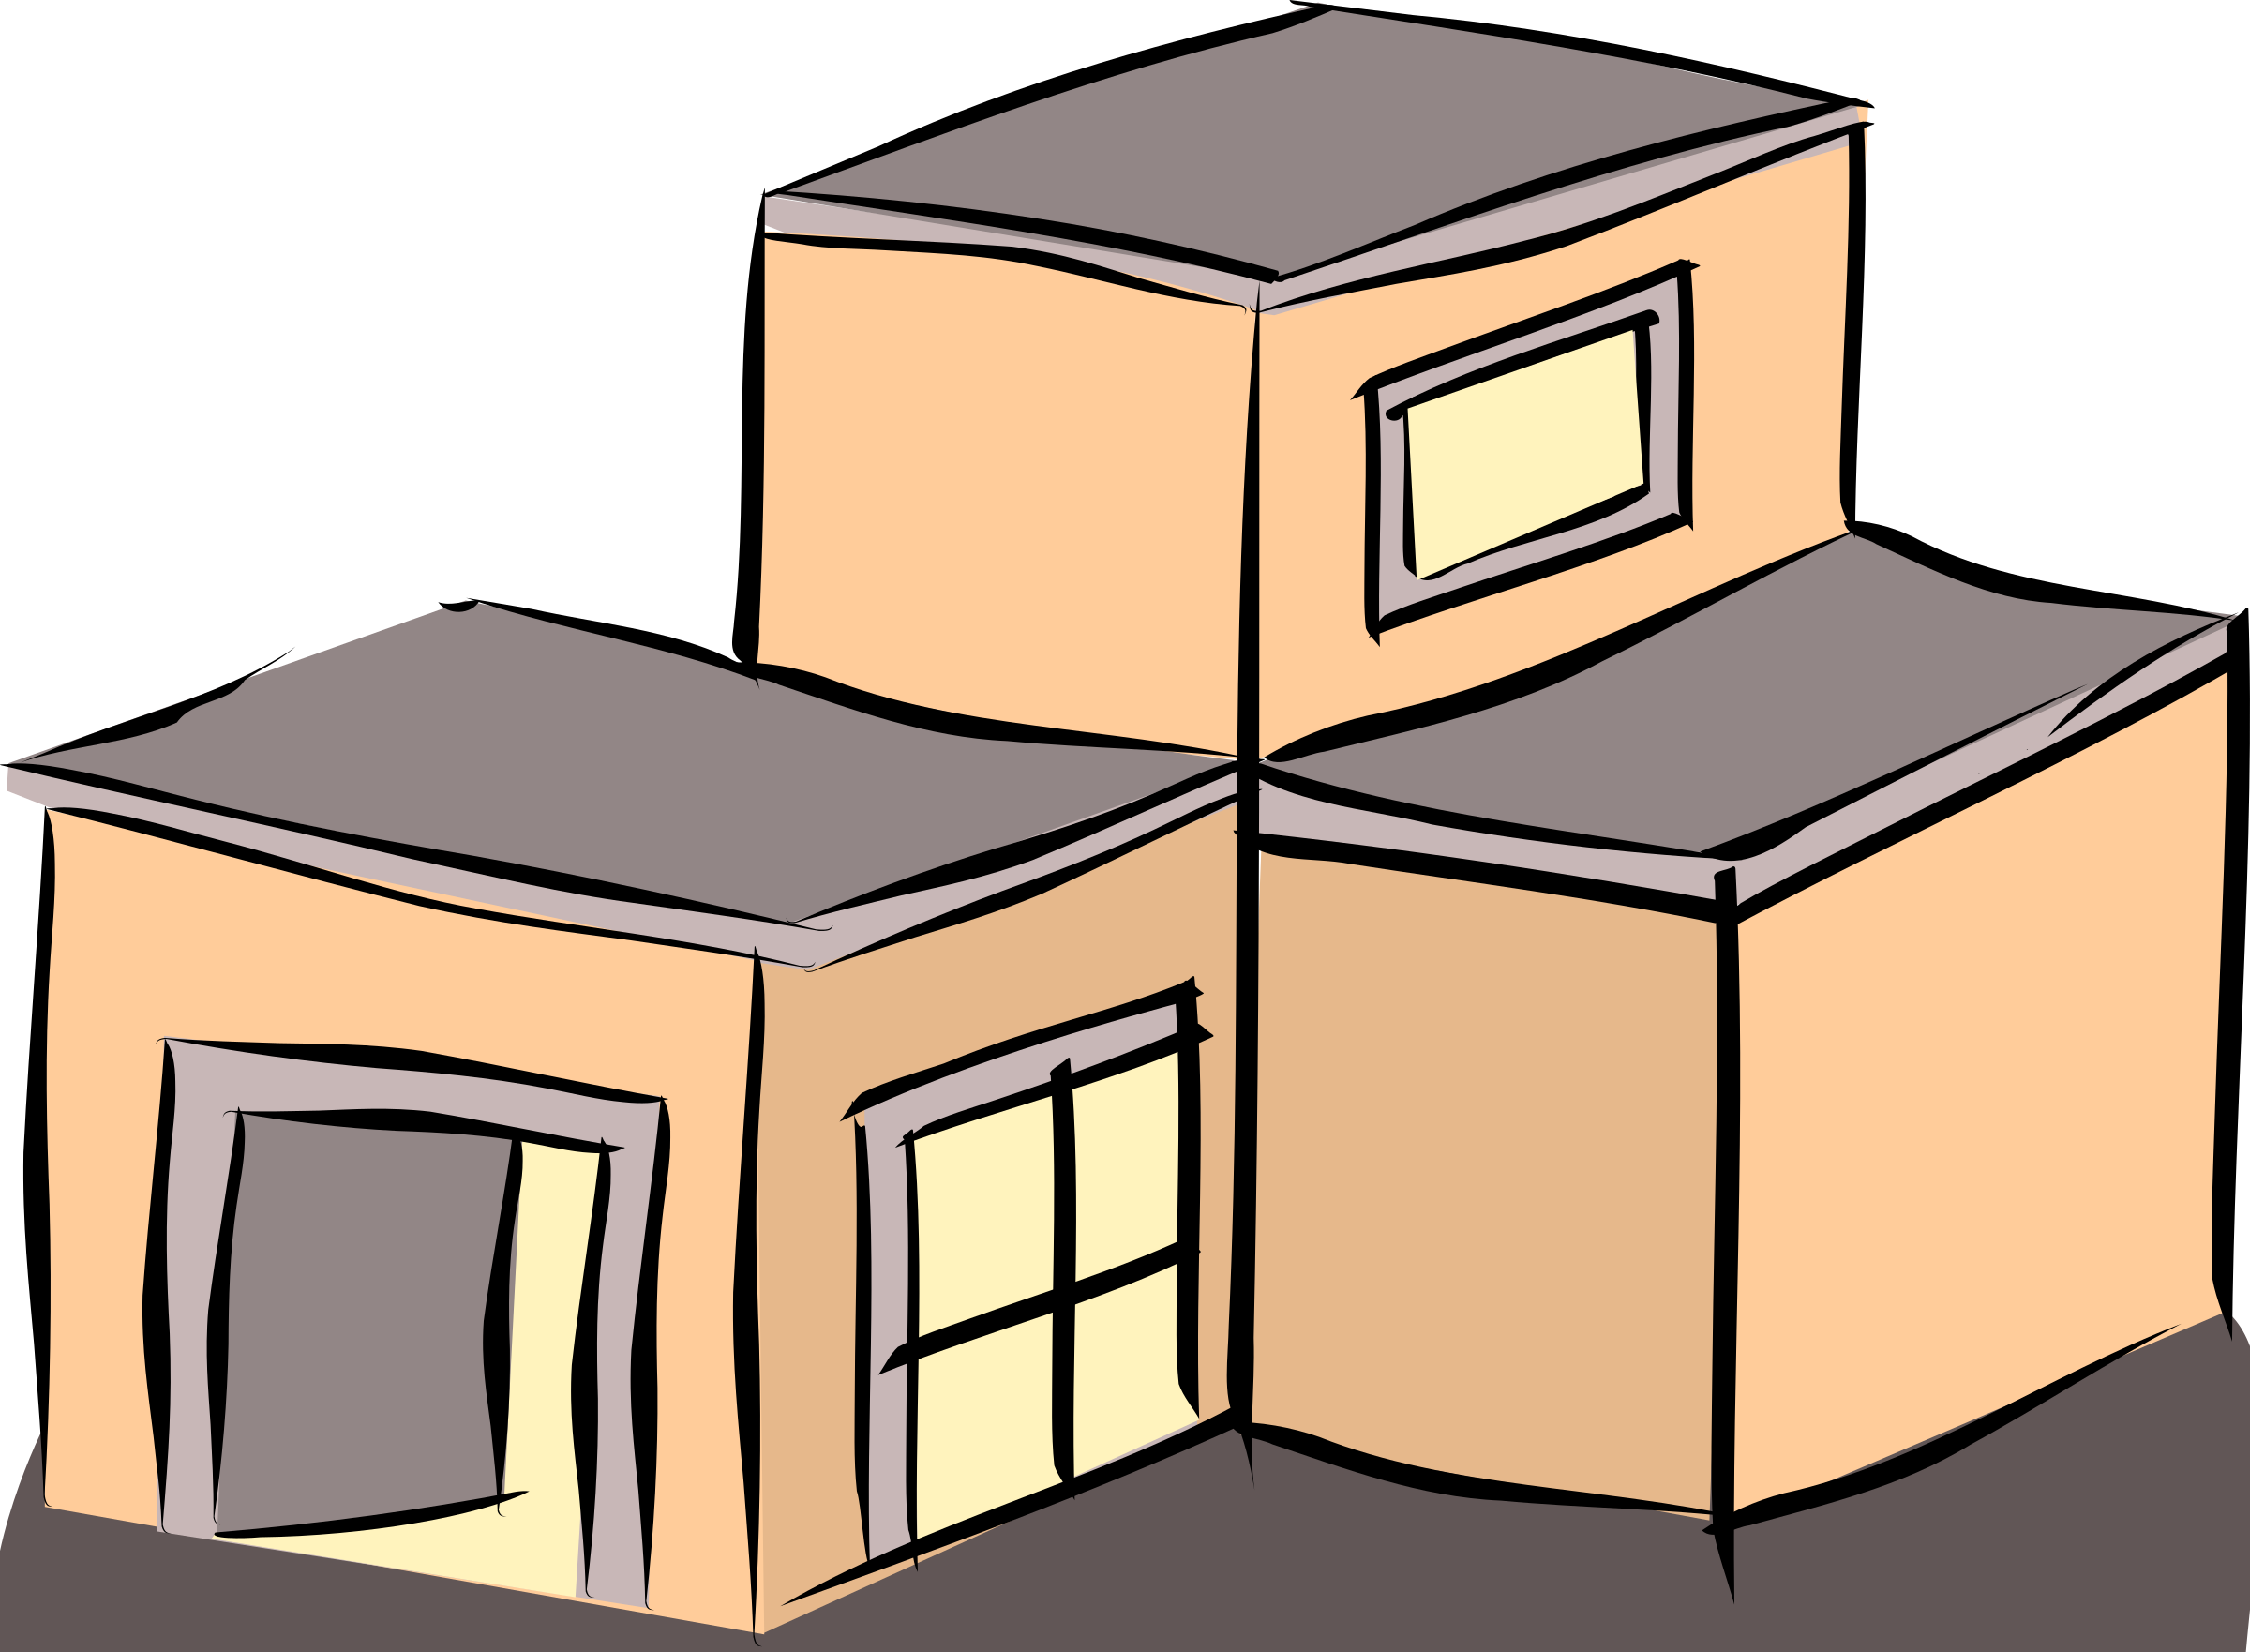 Rooftop vector building. A house graphic